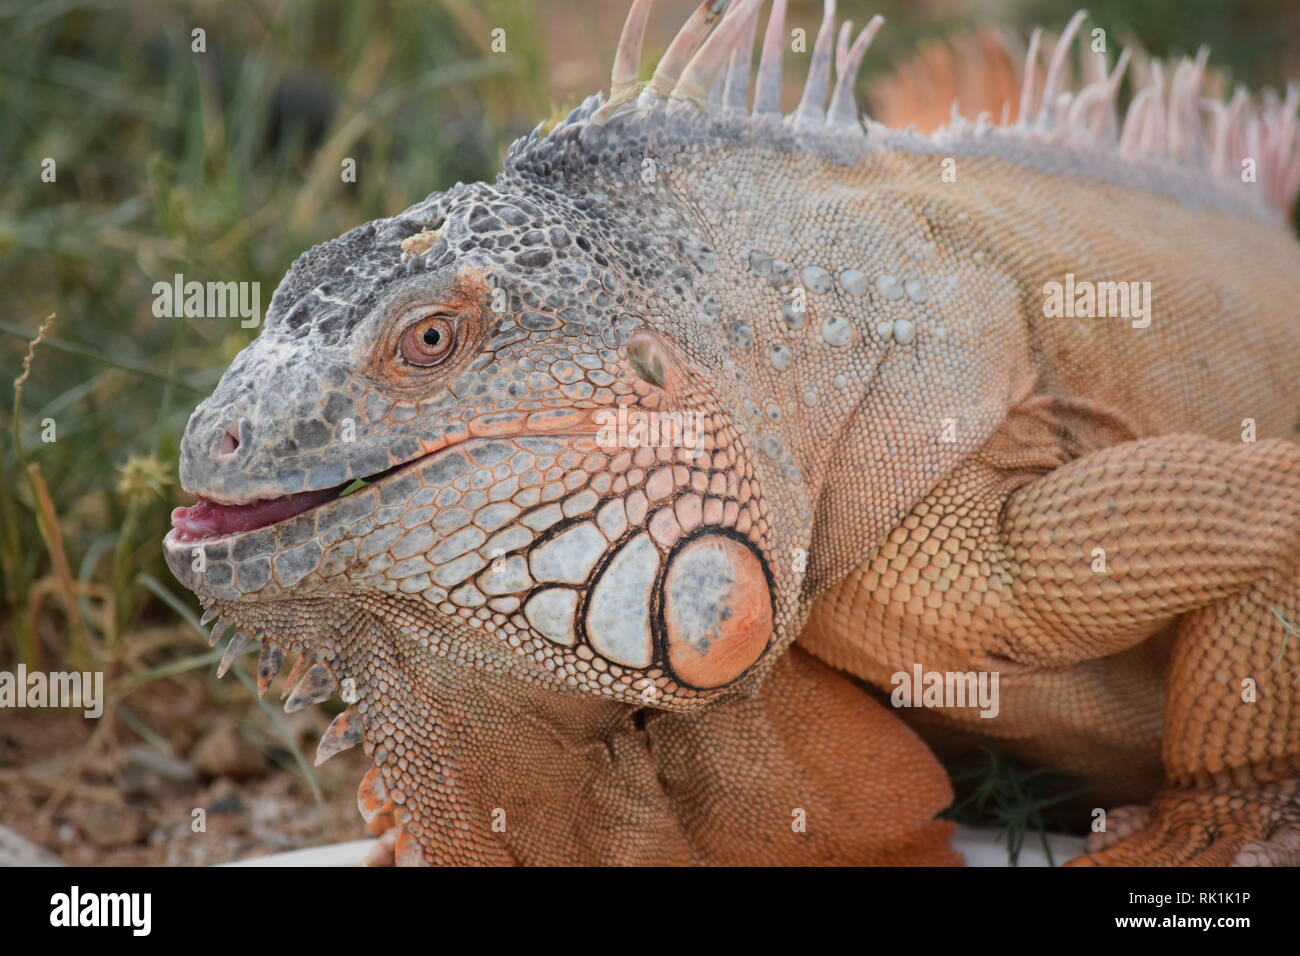 A huge lizard ponders his next meal at the Out of Africa wildlife sanctuary in Arizona - Stock Image